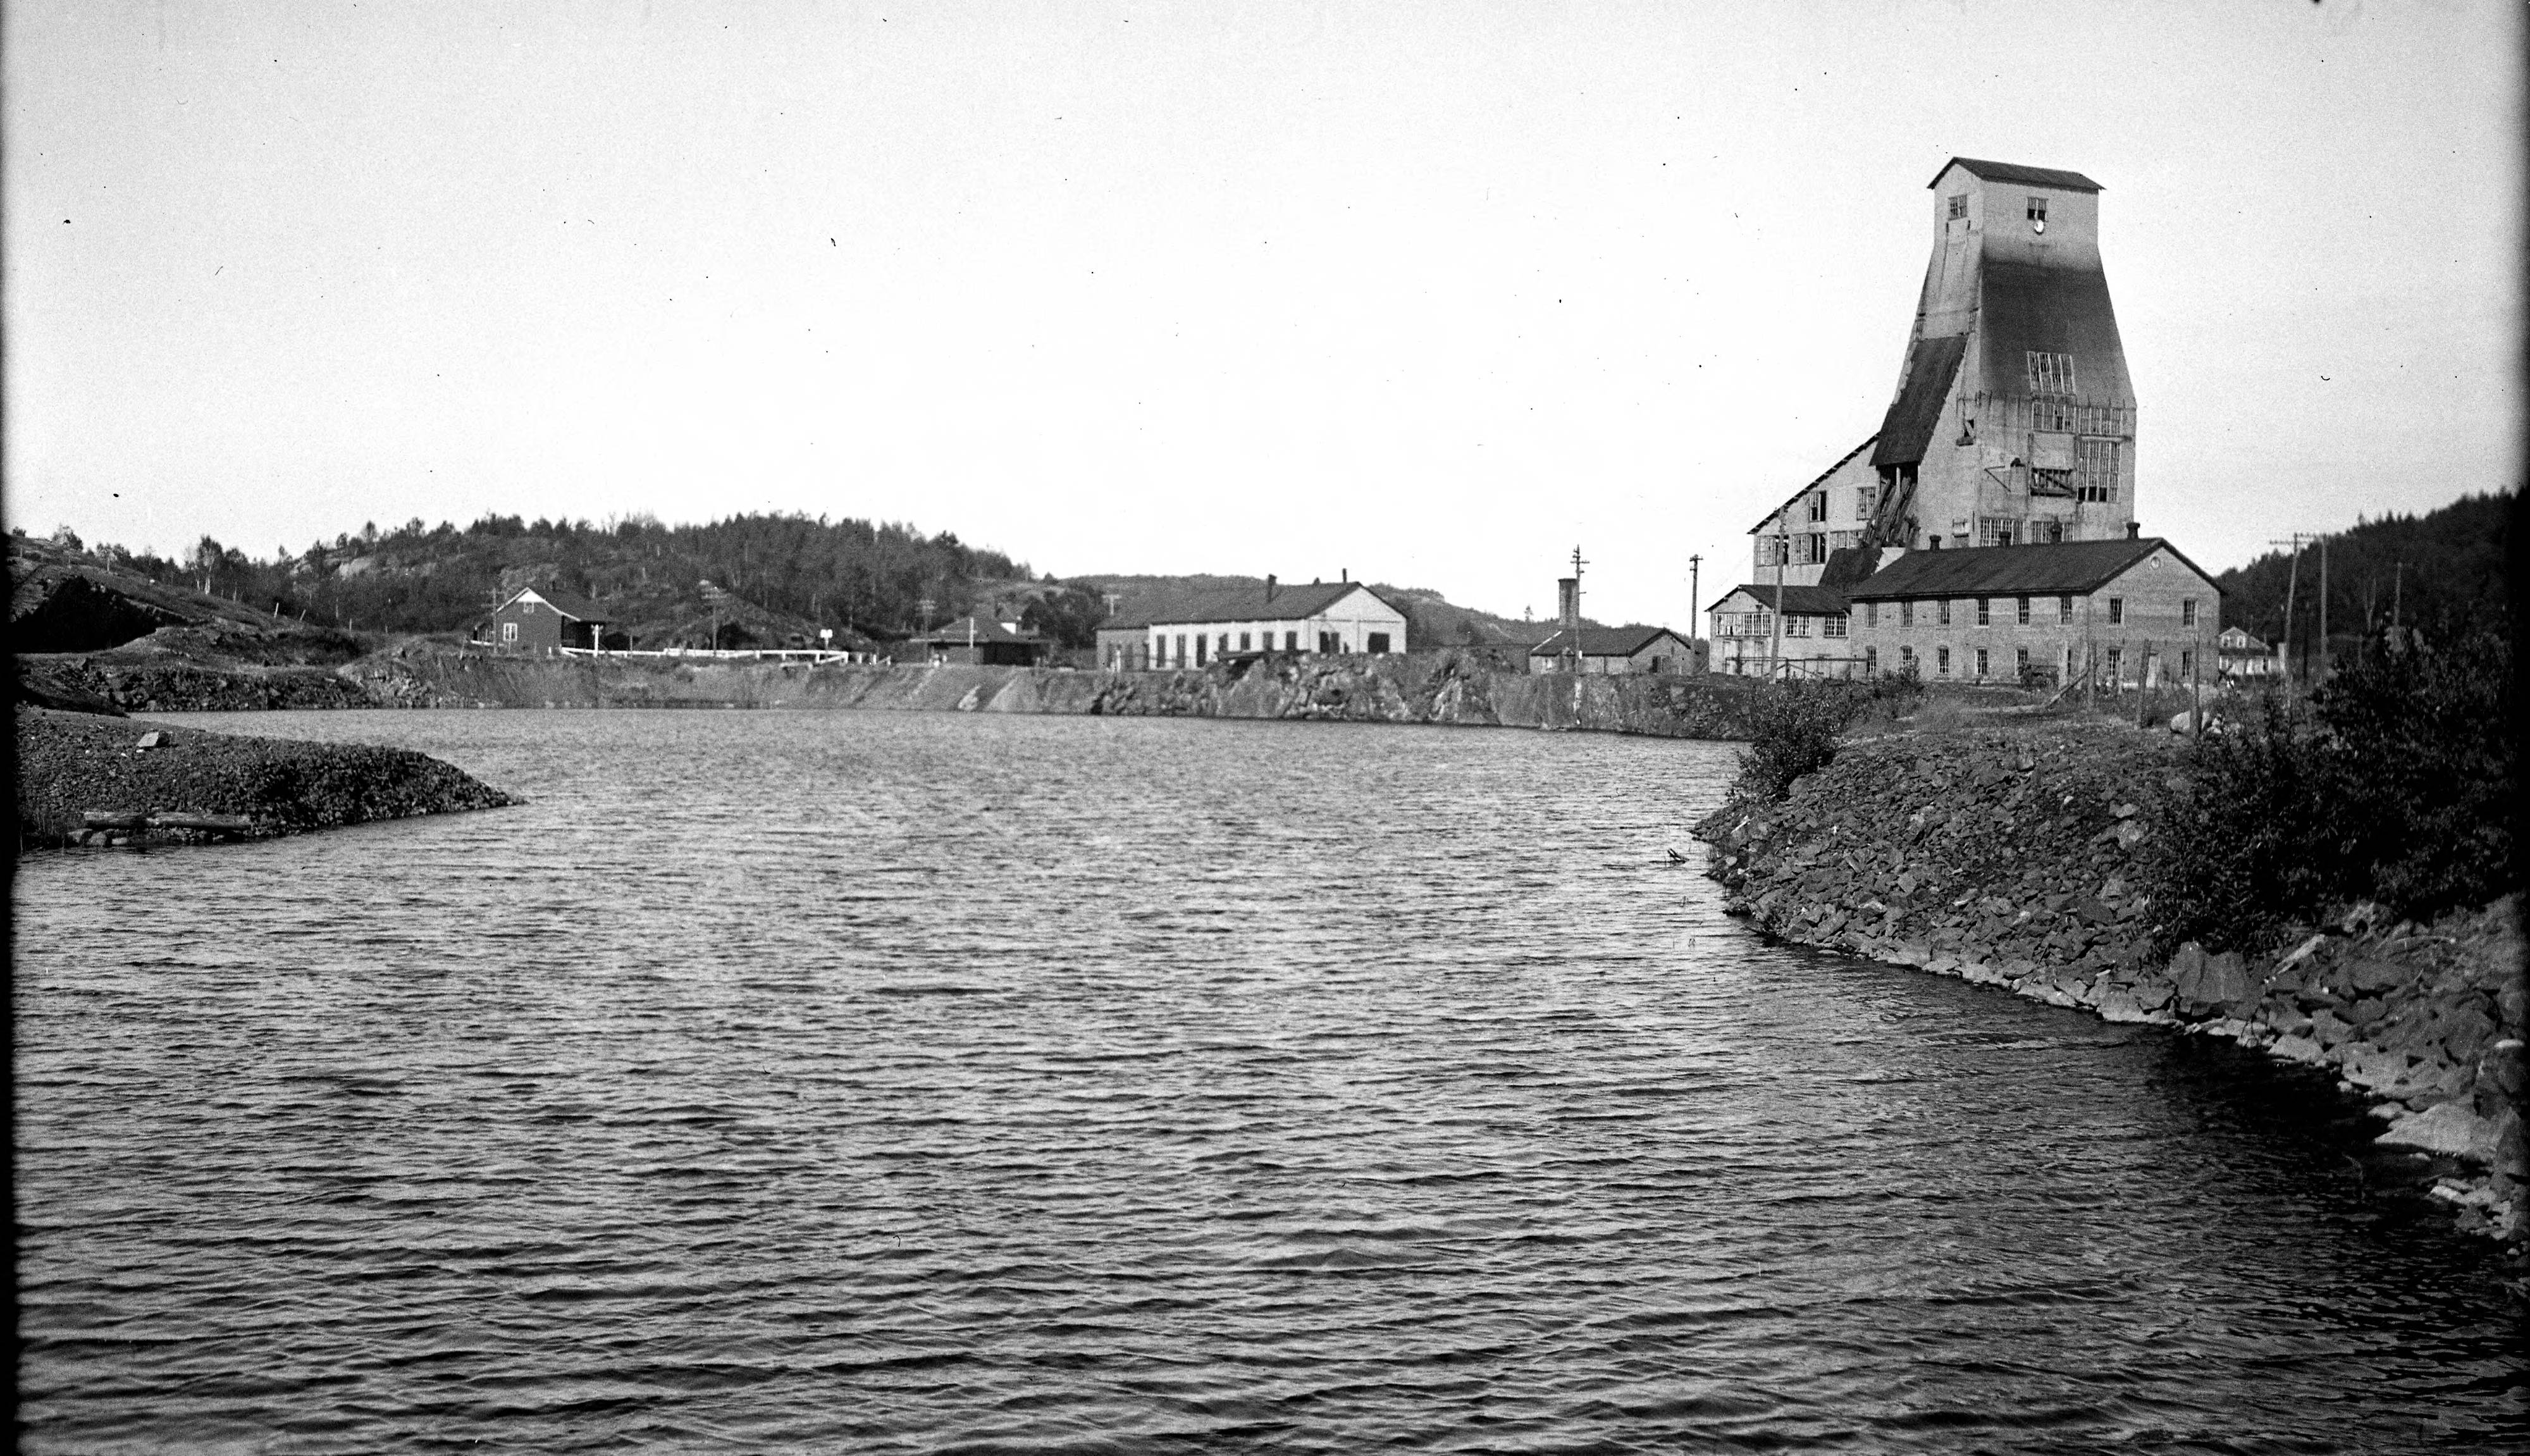 October 27 - Worthington, Ohio, collapses into a lake due to mine shafts underground - as the town has already been evacuated, there are no injuries